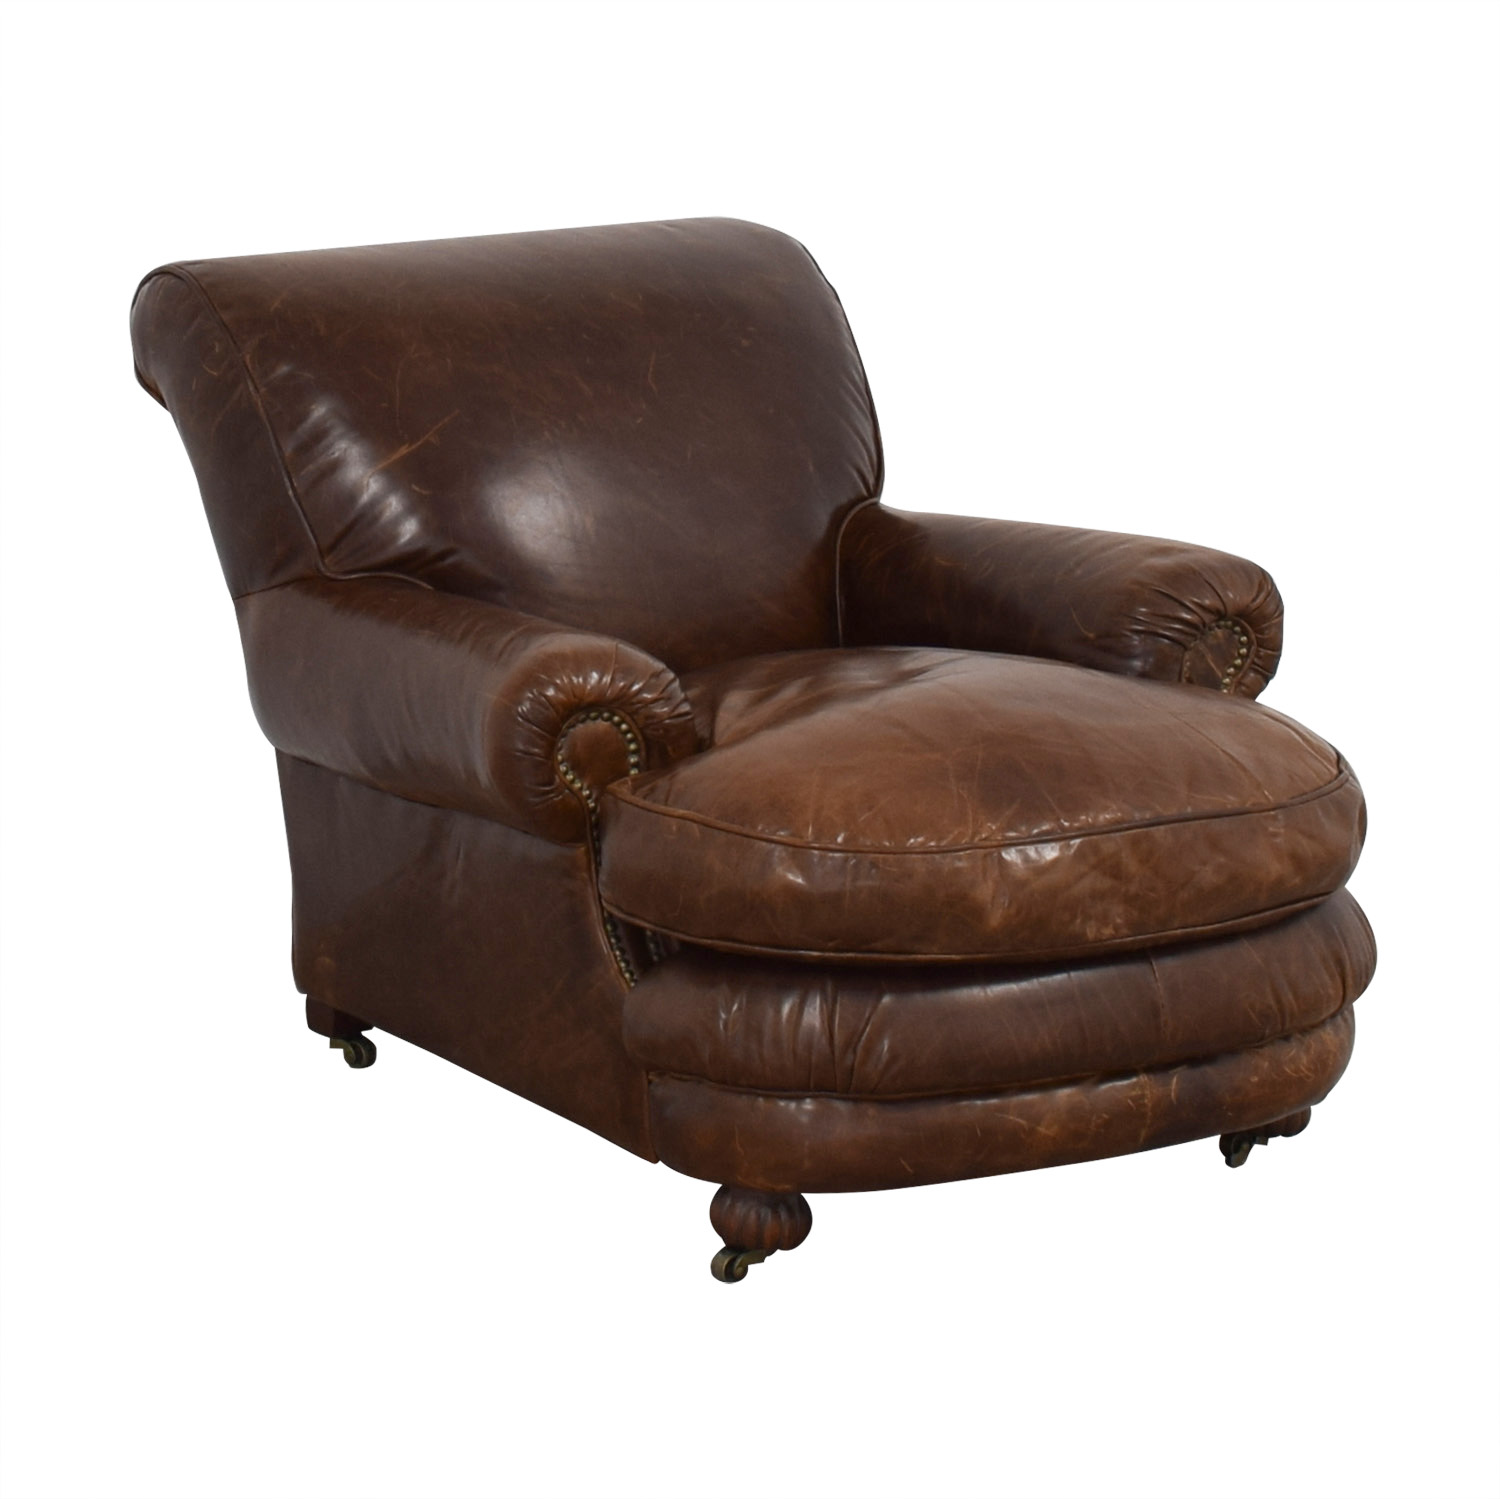 buy Restoration Hardware Library Chair Restoration Hardware Accent Chairs